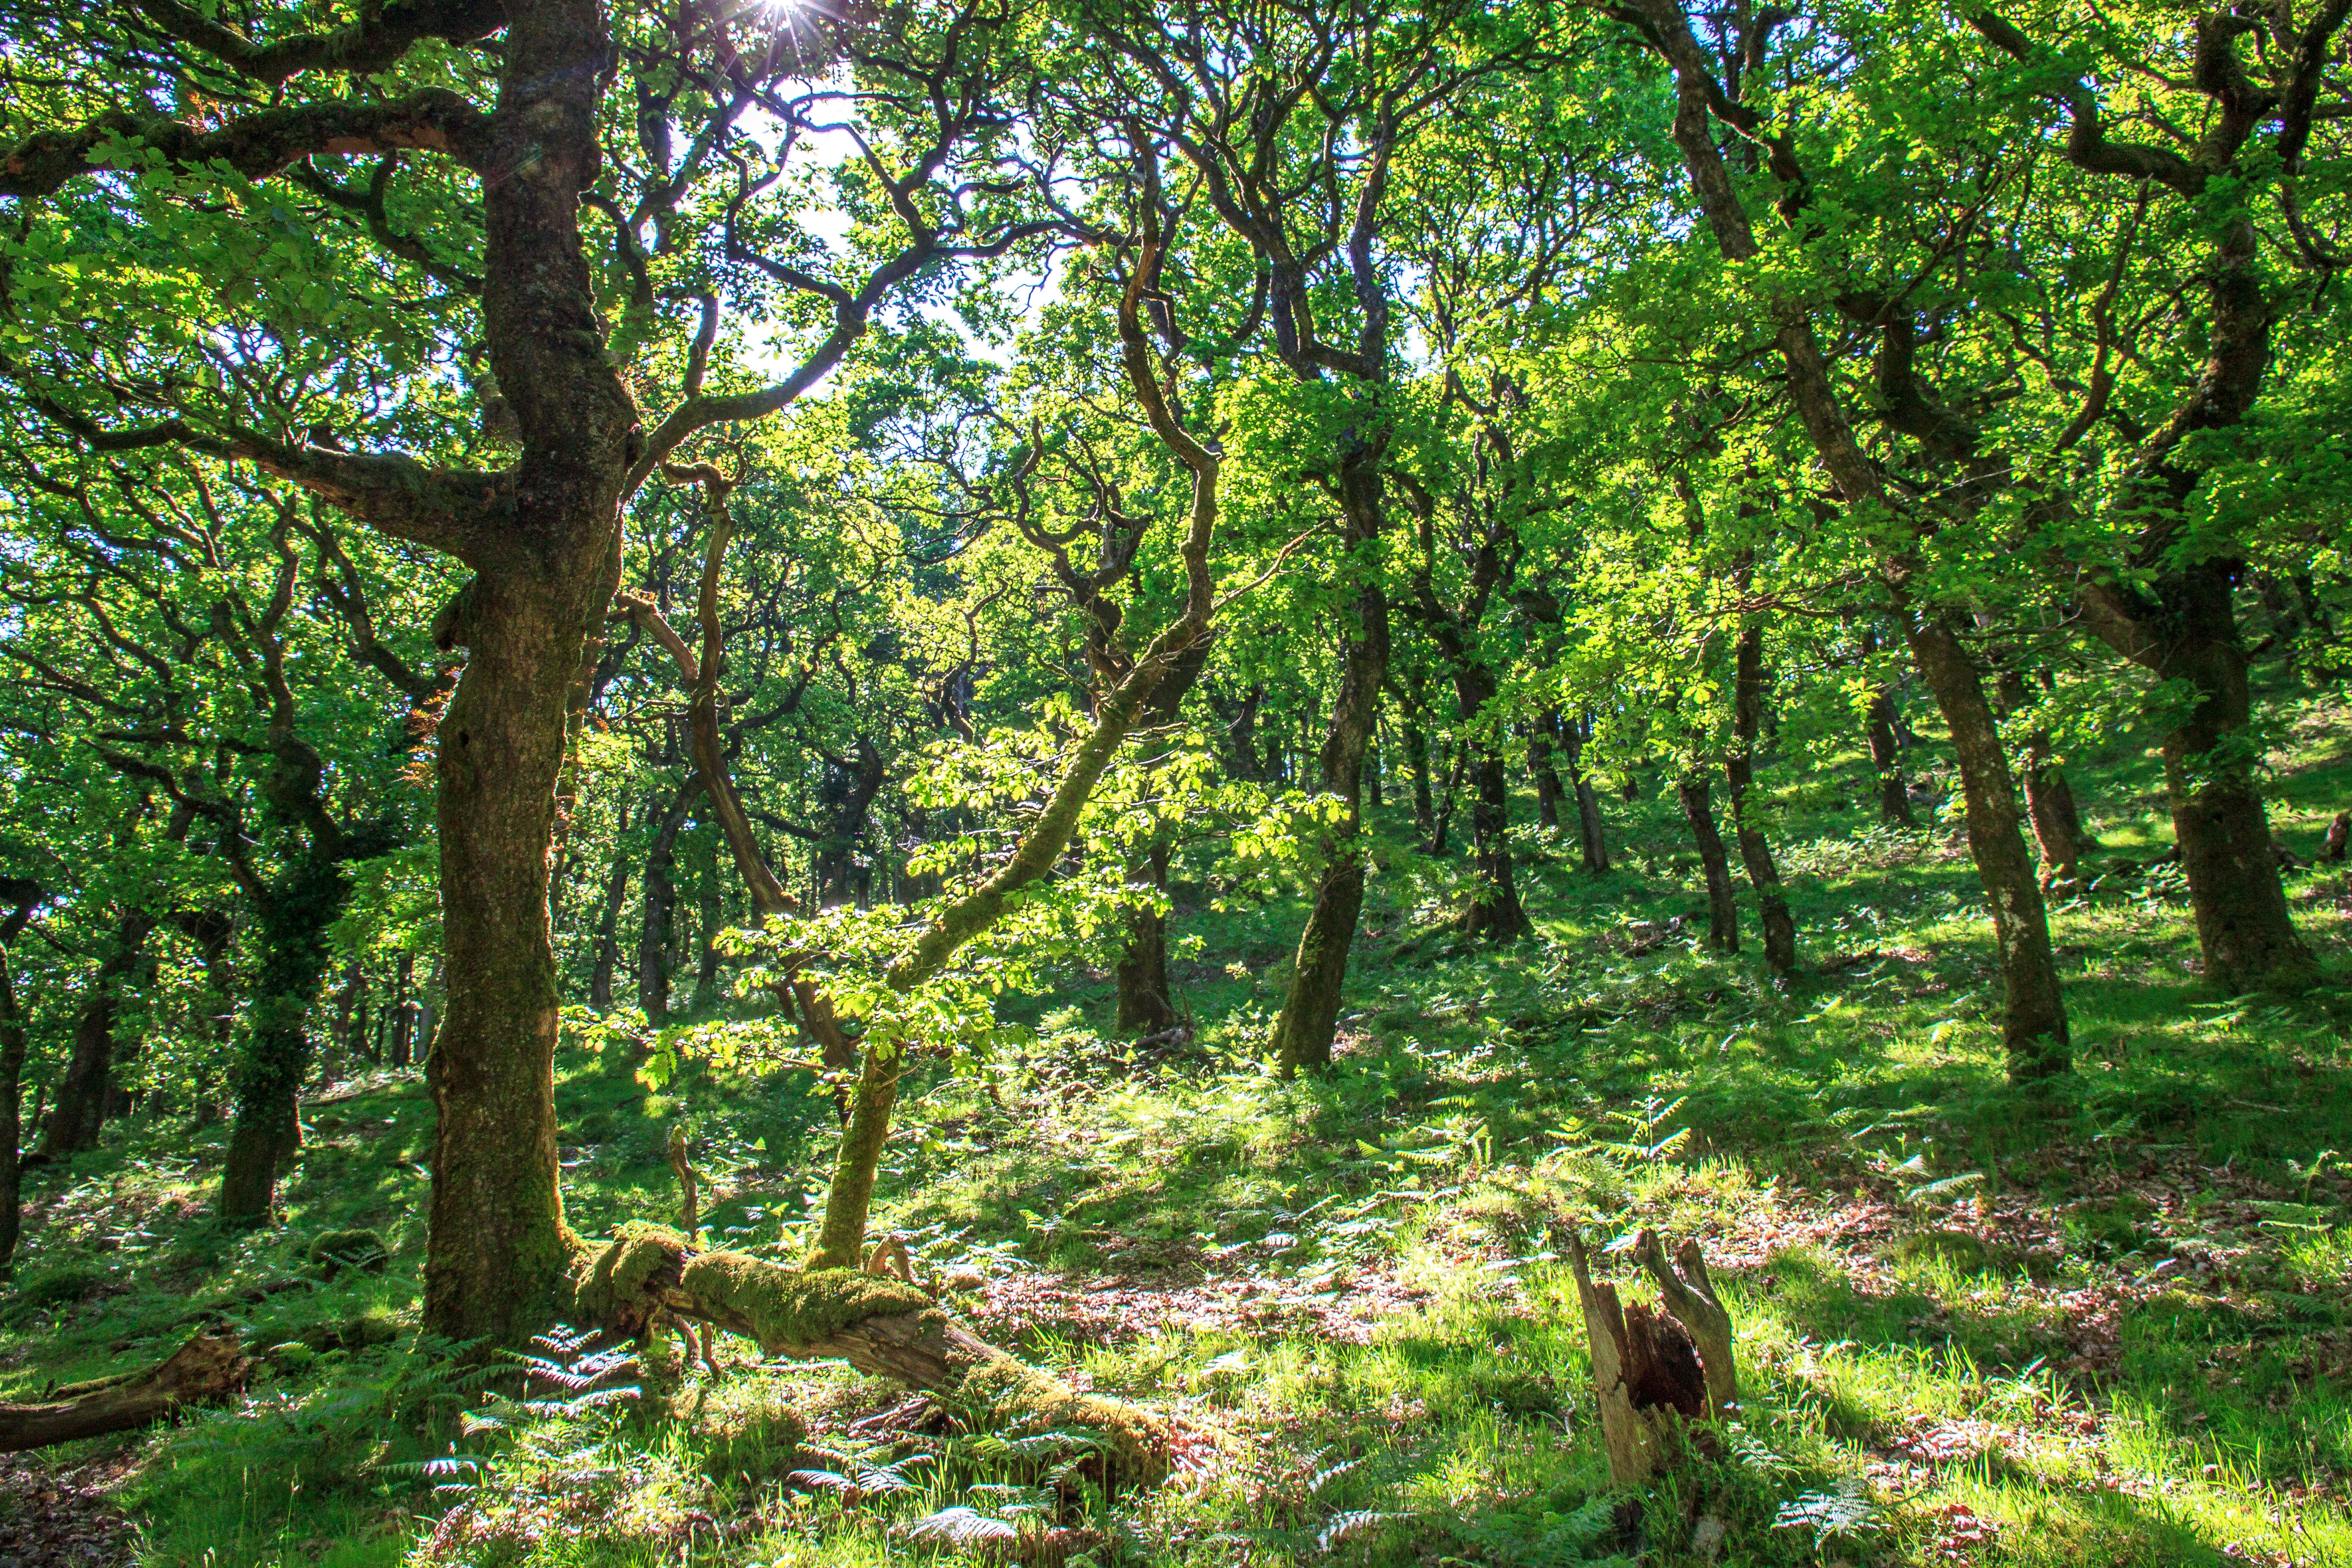 Woodland in the Doone Valley on Exmoor